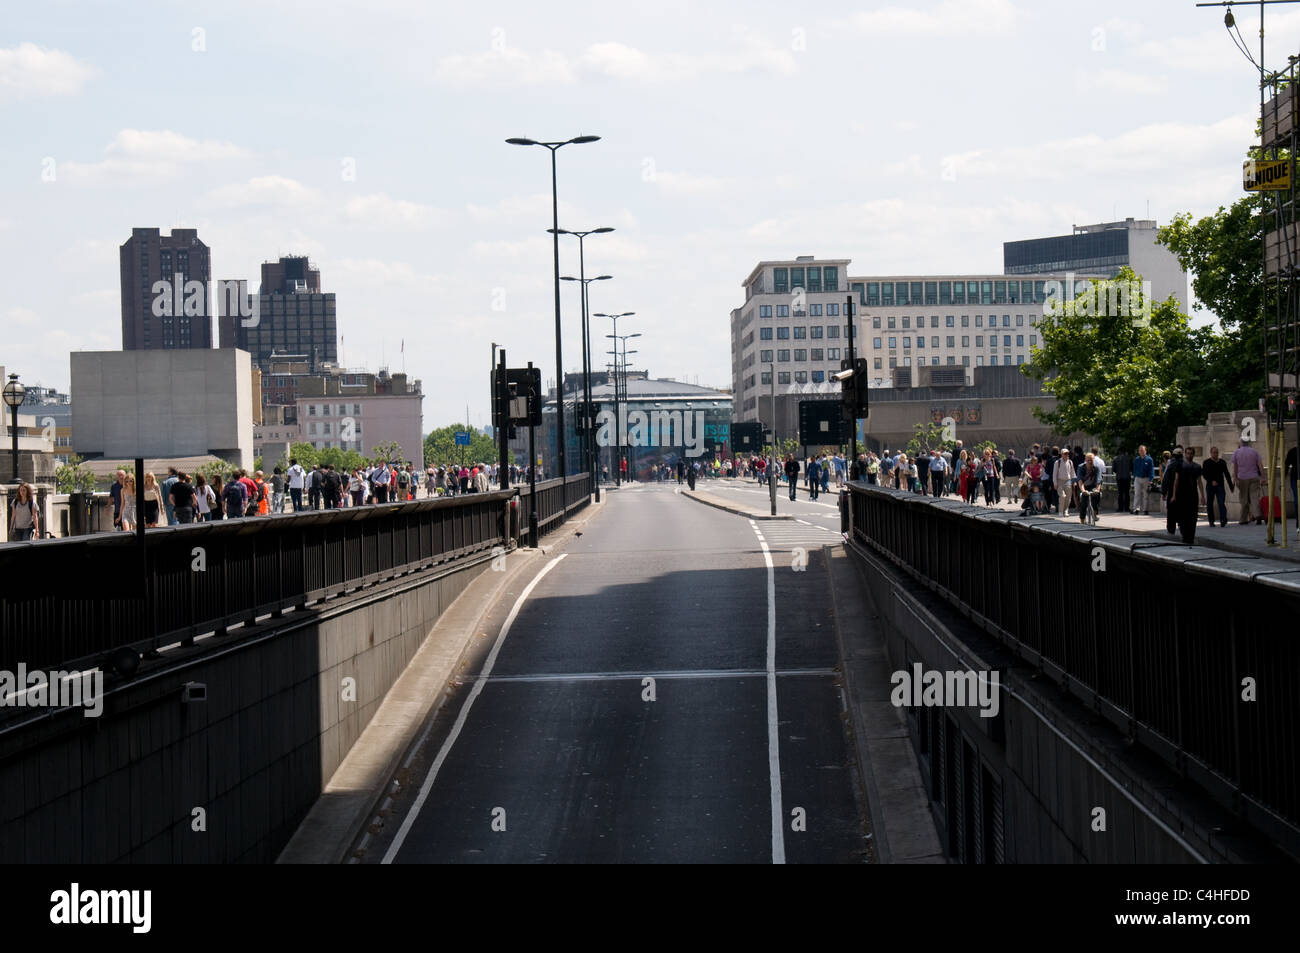 Lunchtime on a Tuesday and Waterloo Bridge has no traffic due to a fire in Marconi House in the Aldwych London - Stock Image